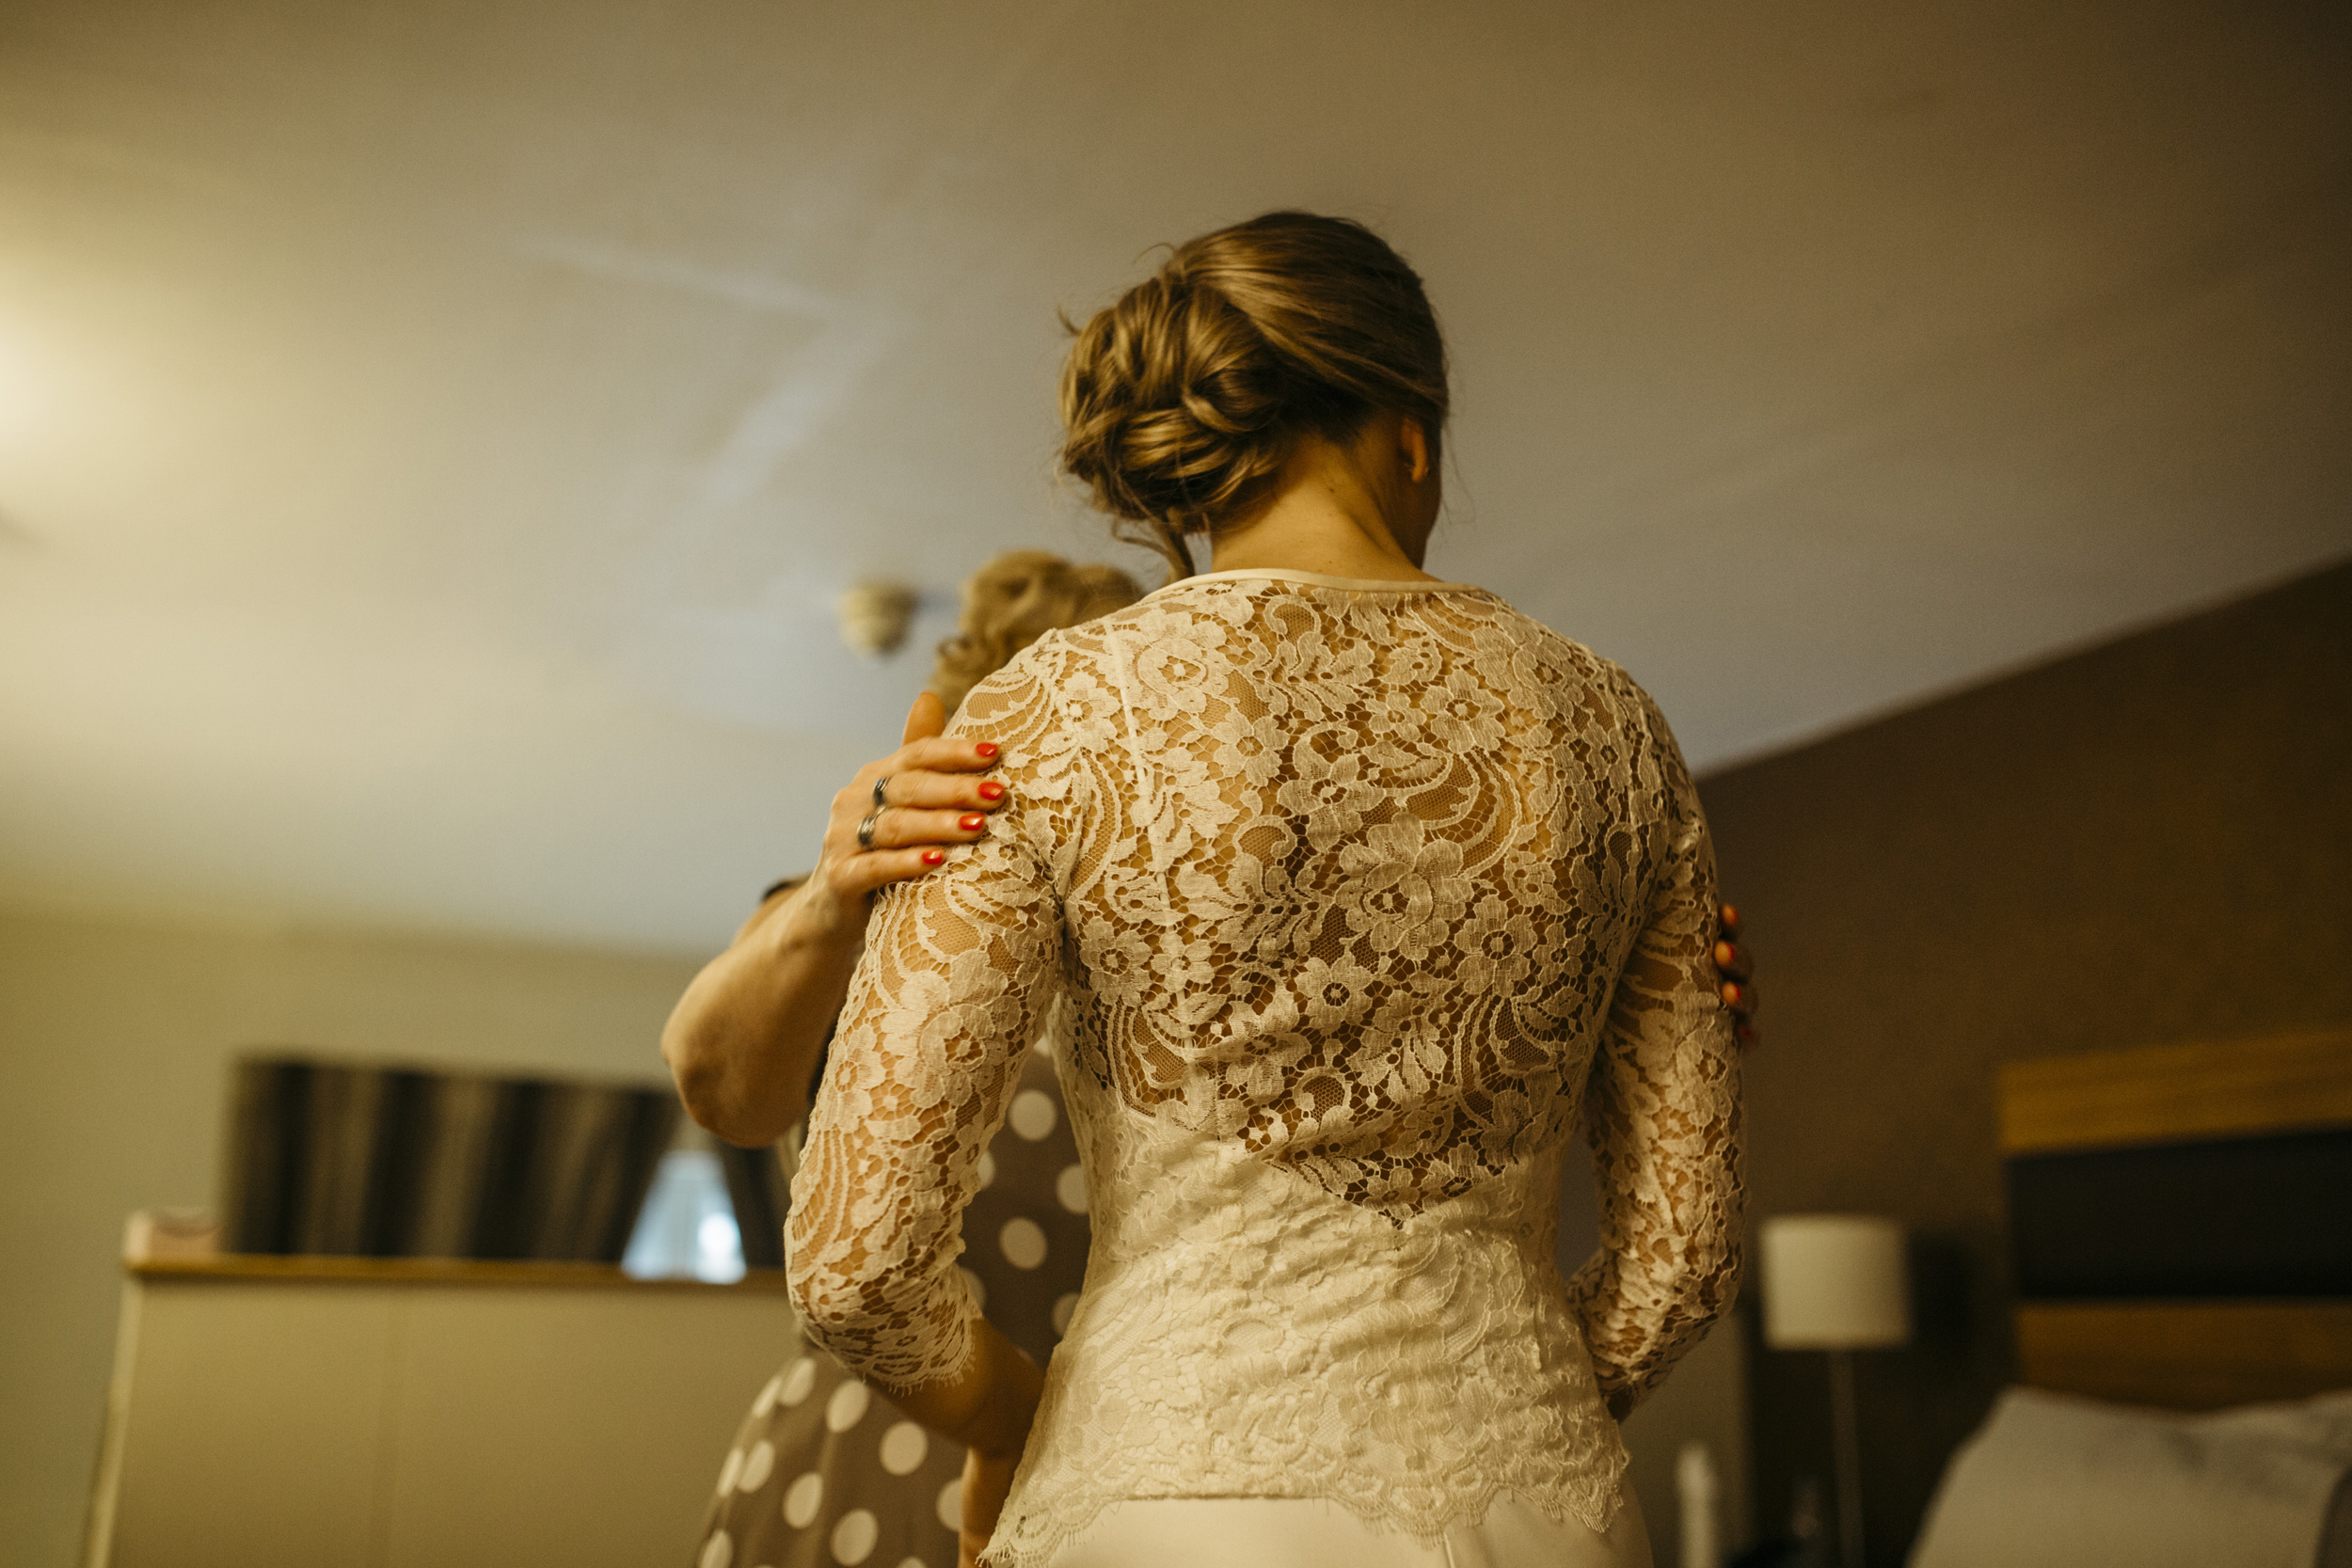 Aimi-Kate-Beaumont-Lace-Wedding-Dress-Sheffield-Kindred-Photography-1.jpg